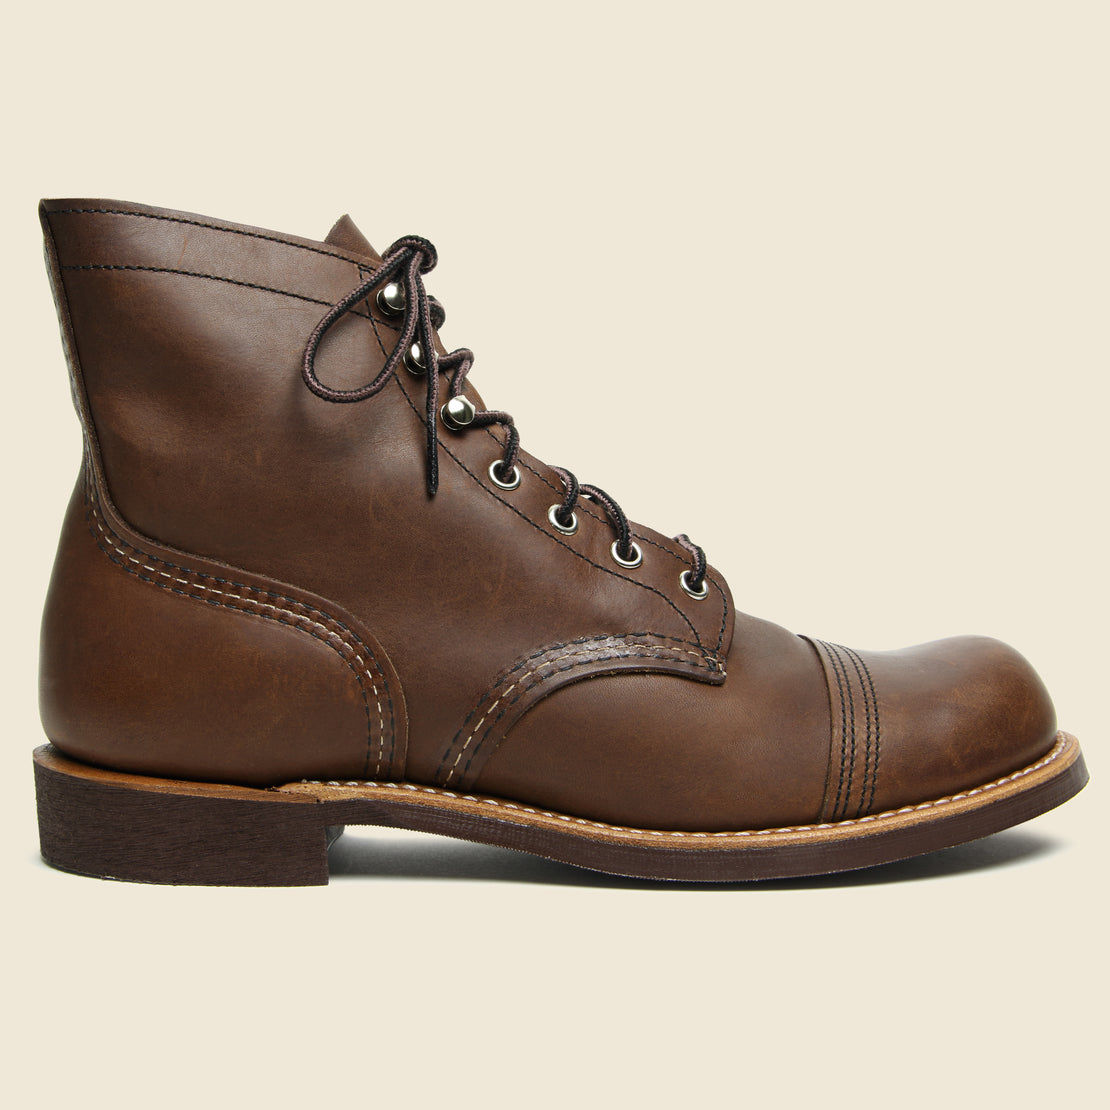 Red Wing Iron Ranger No. 8111 - Amber - Mini-Lug Sole